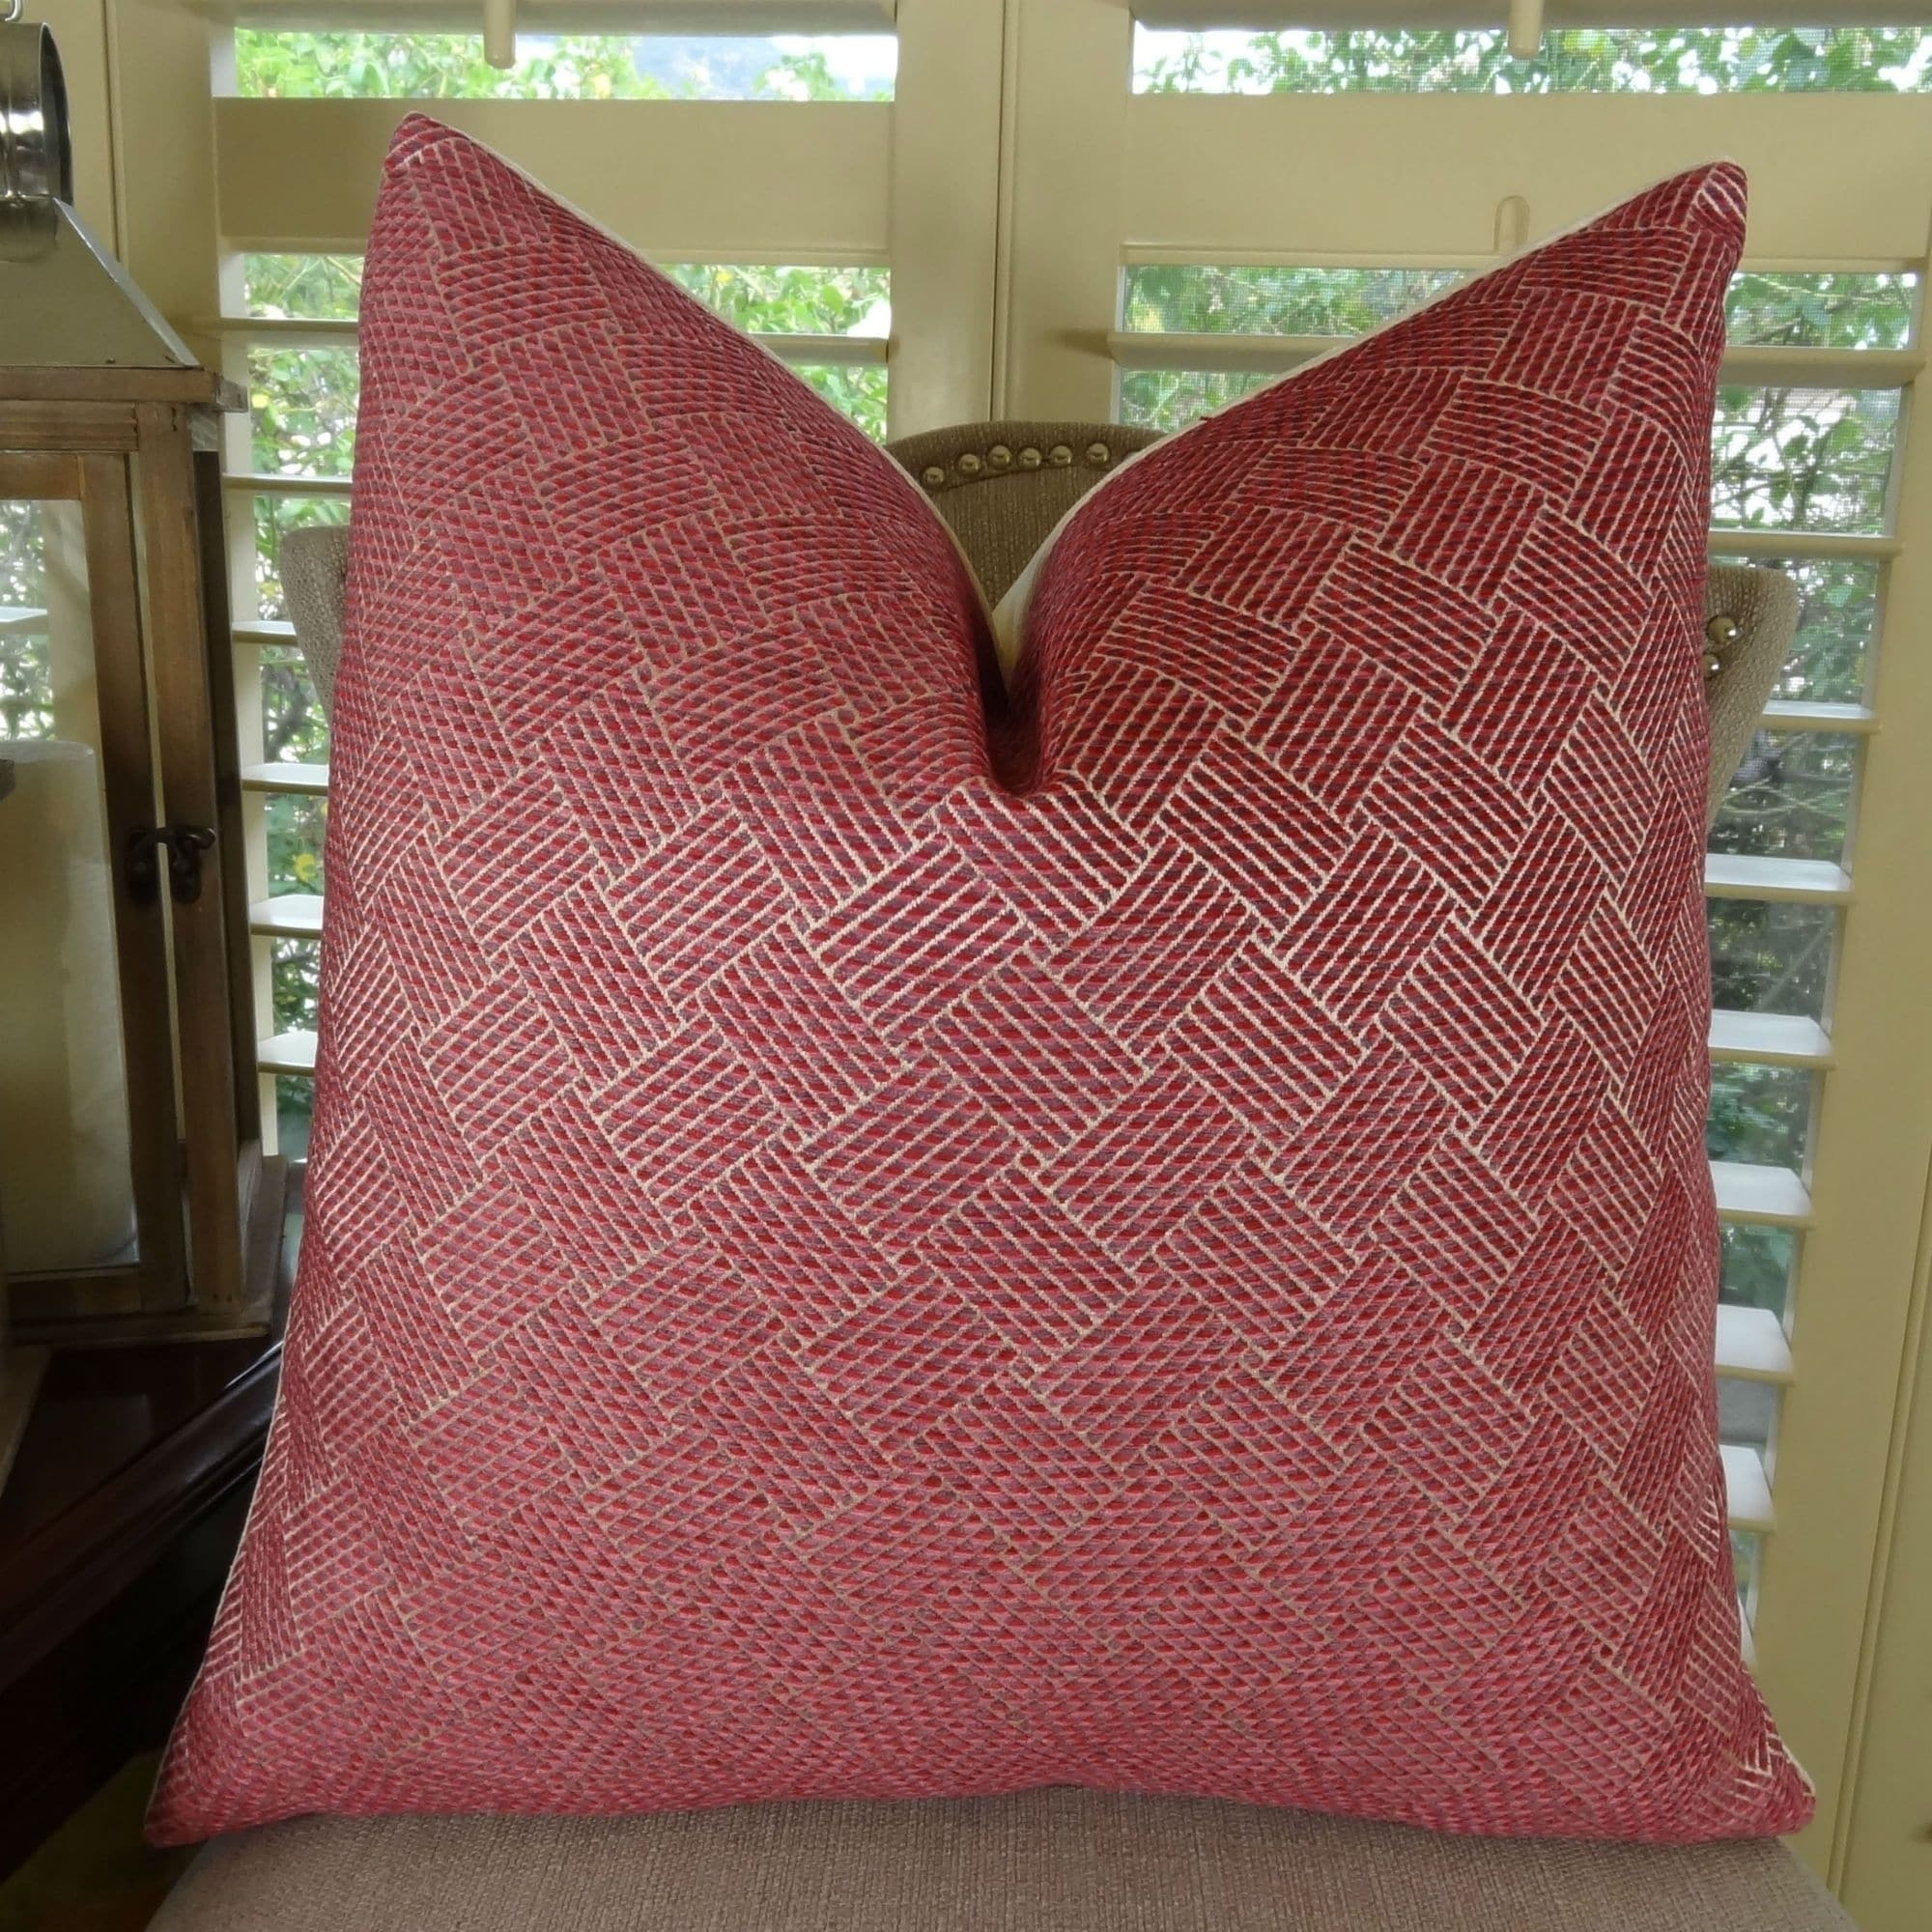 Thomas Collection Fuchsia Cream Velvet Jaggared Accent Pillow, Handmade in USA, 11274D (Large - Square - double sided 22 x 22)